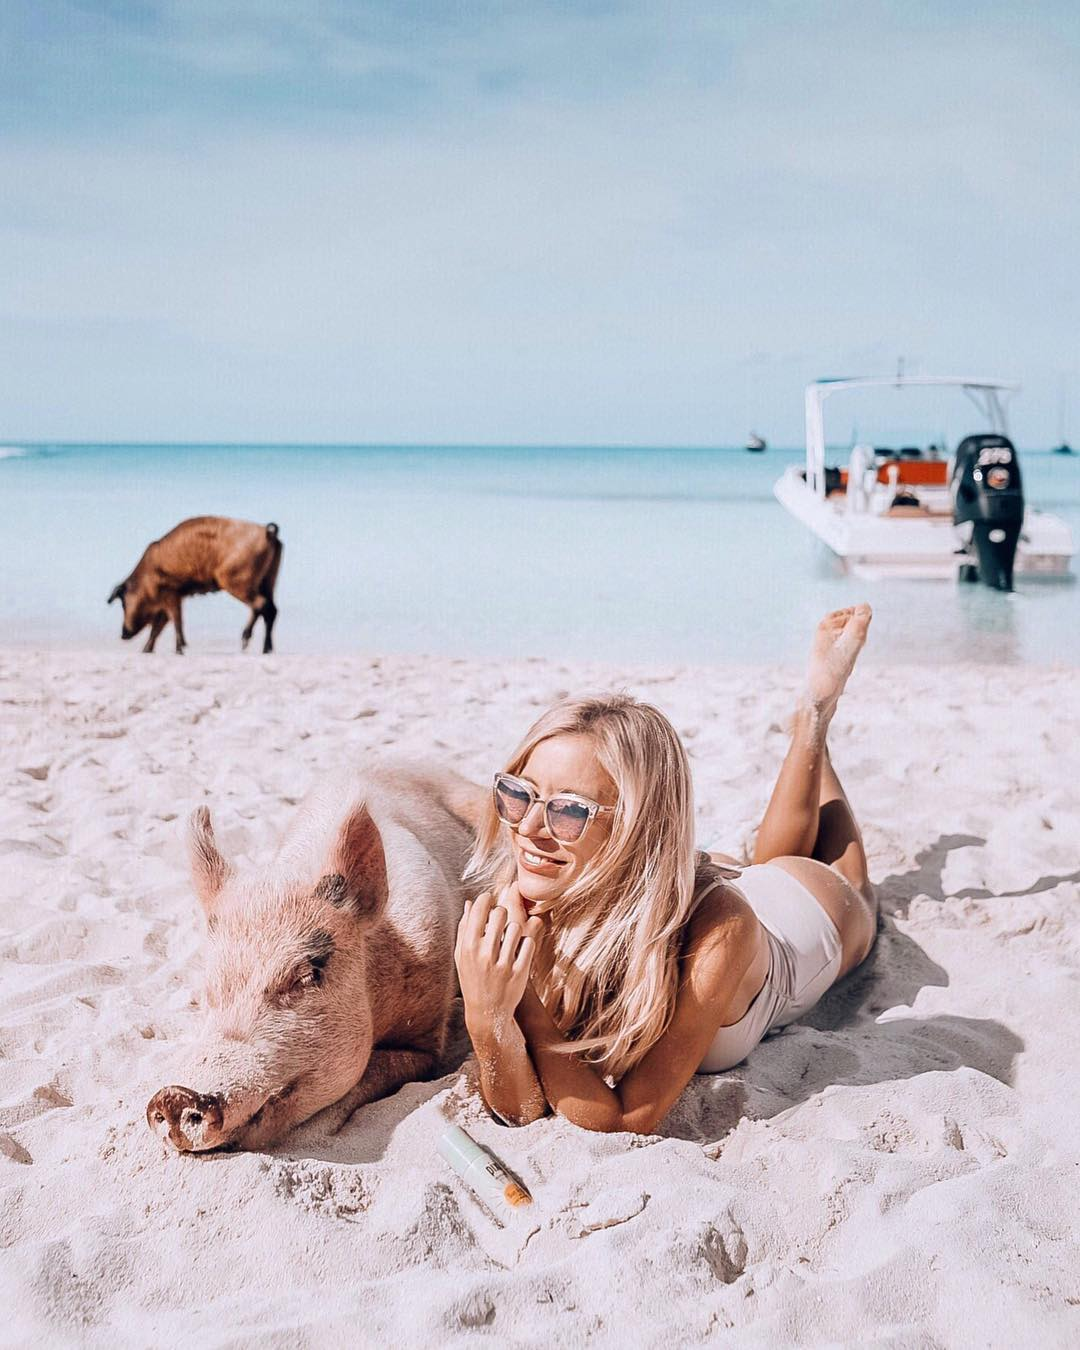 Instagram Star & Travel Blogger Aggie shares her Bucket List Exuma Day Trip!